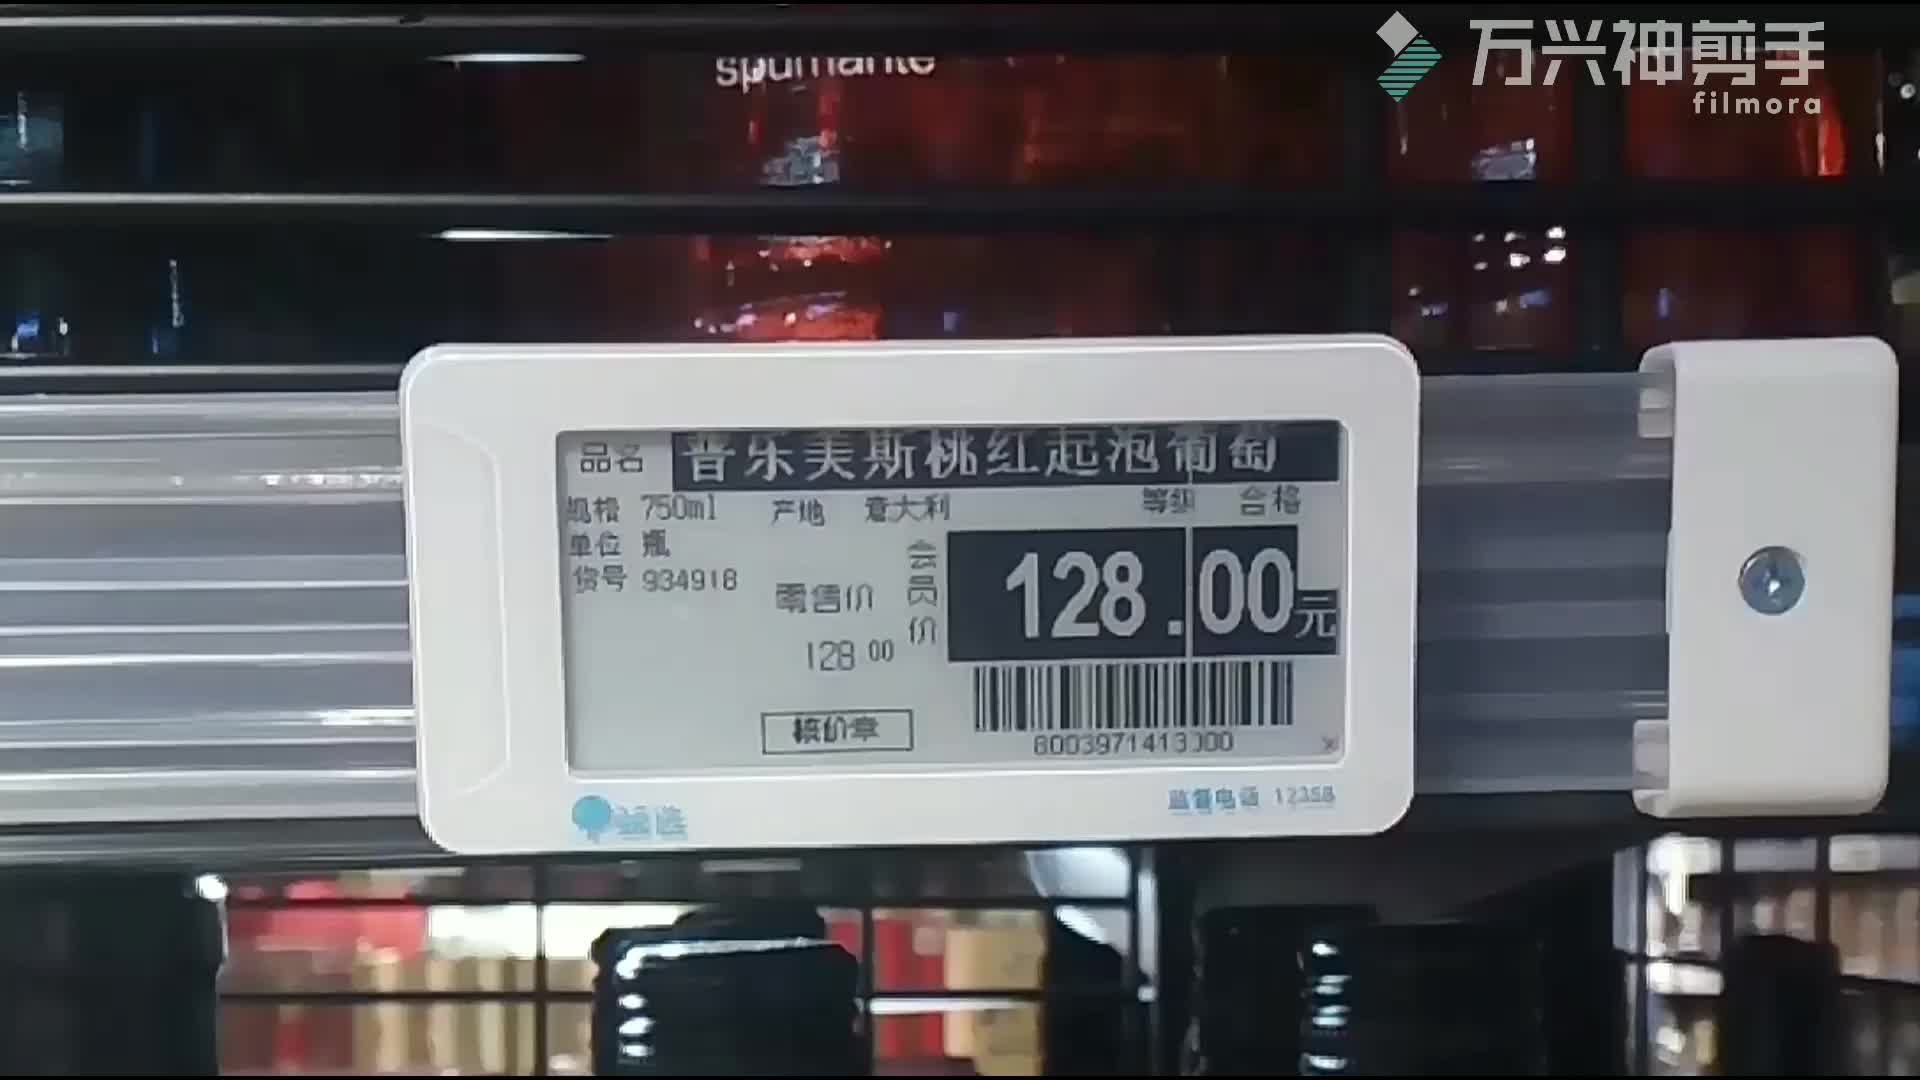 Hypermarket digital tag,Supermarket digital price signs